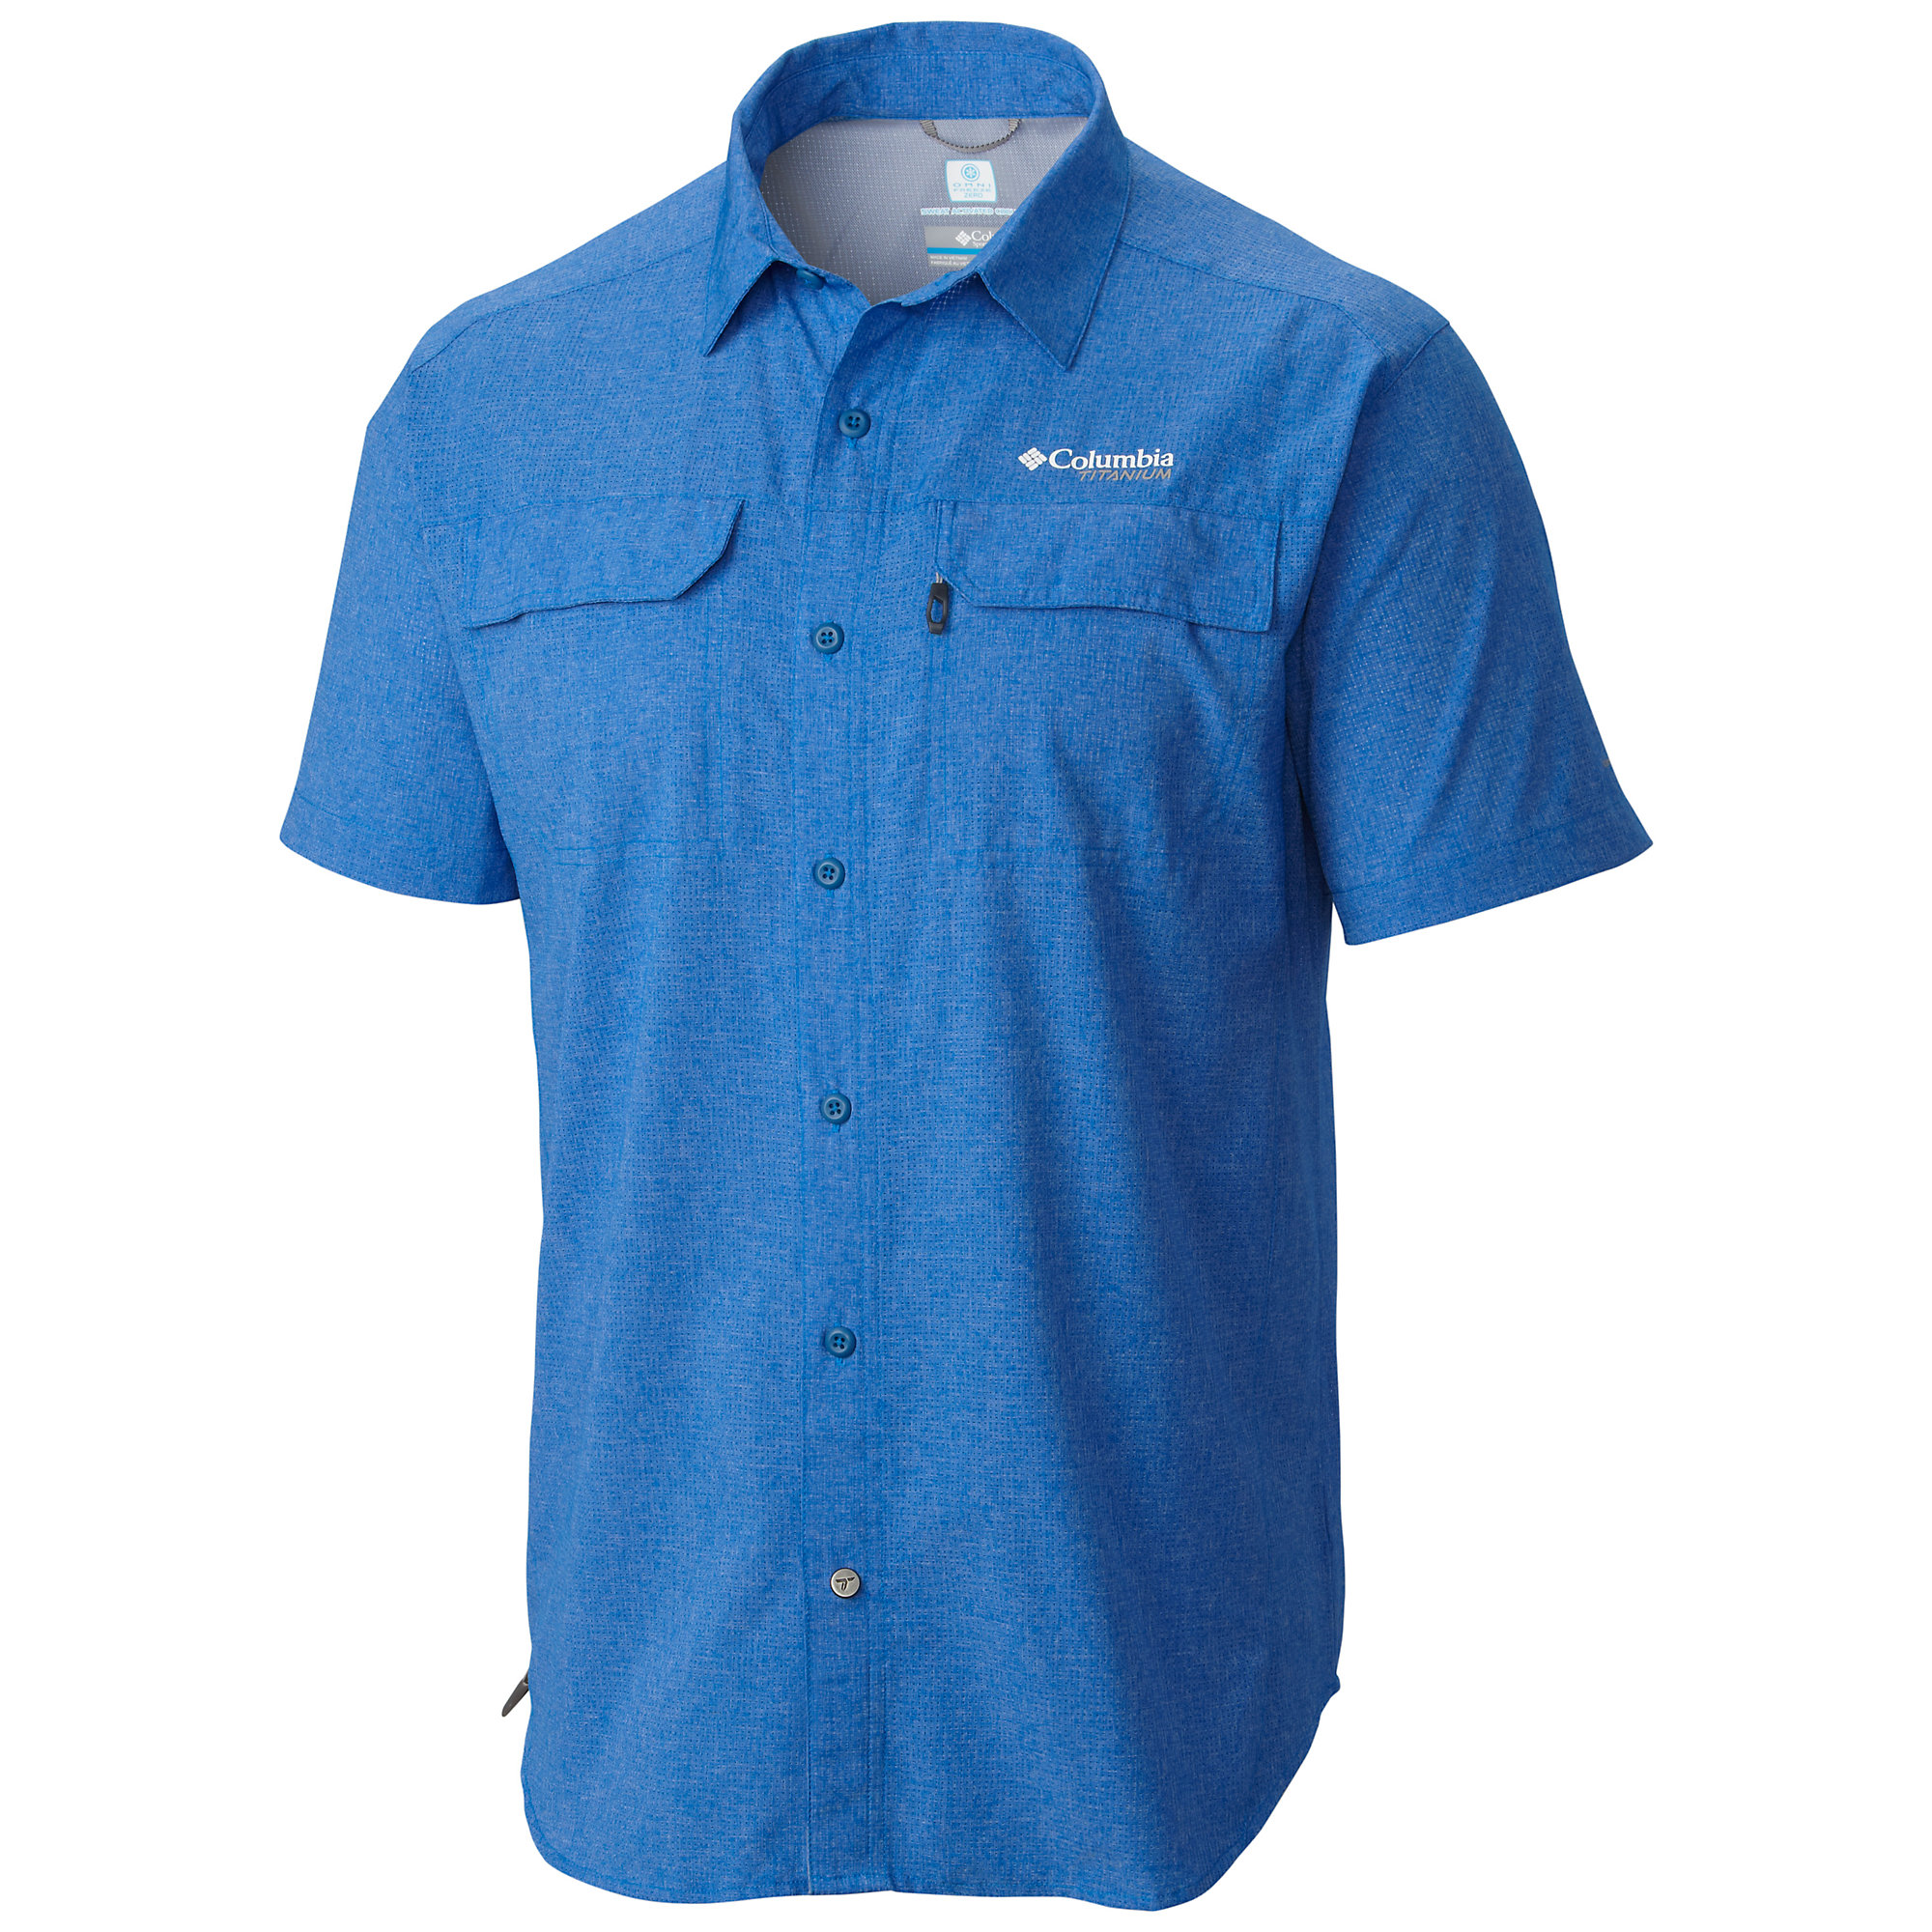 Columbia Irico Short Sleeve Shirt